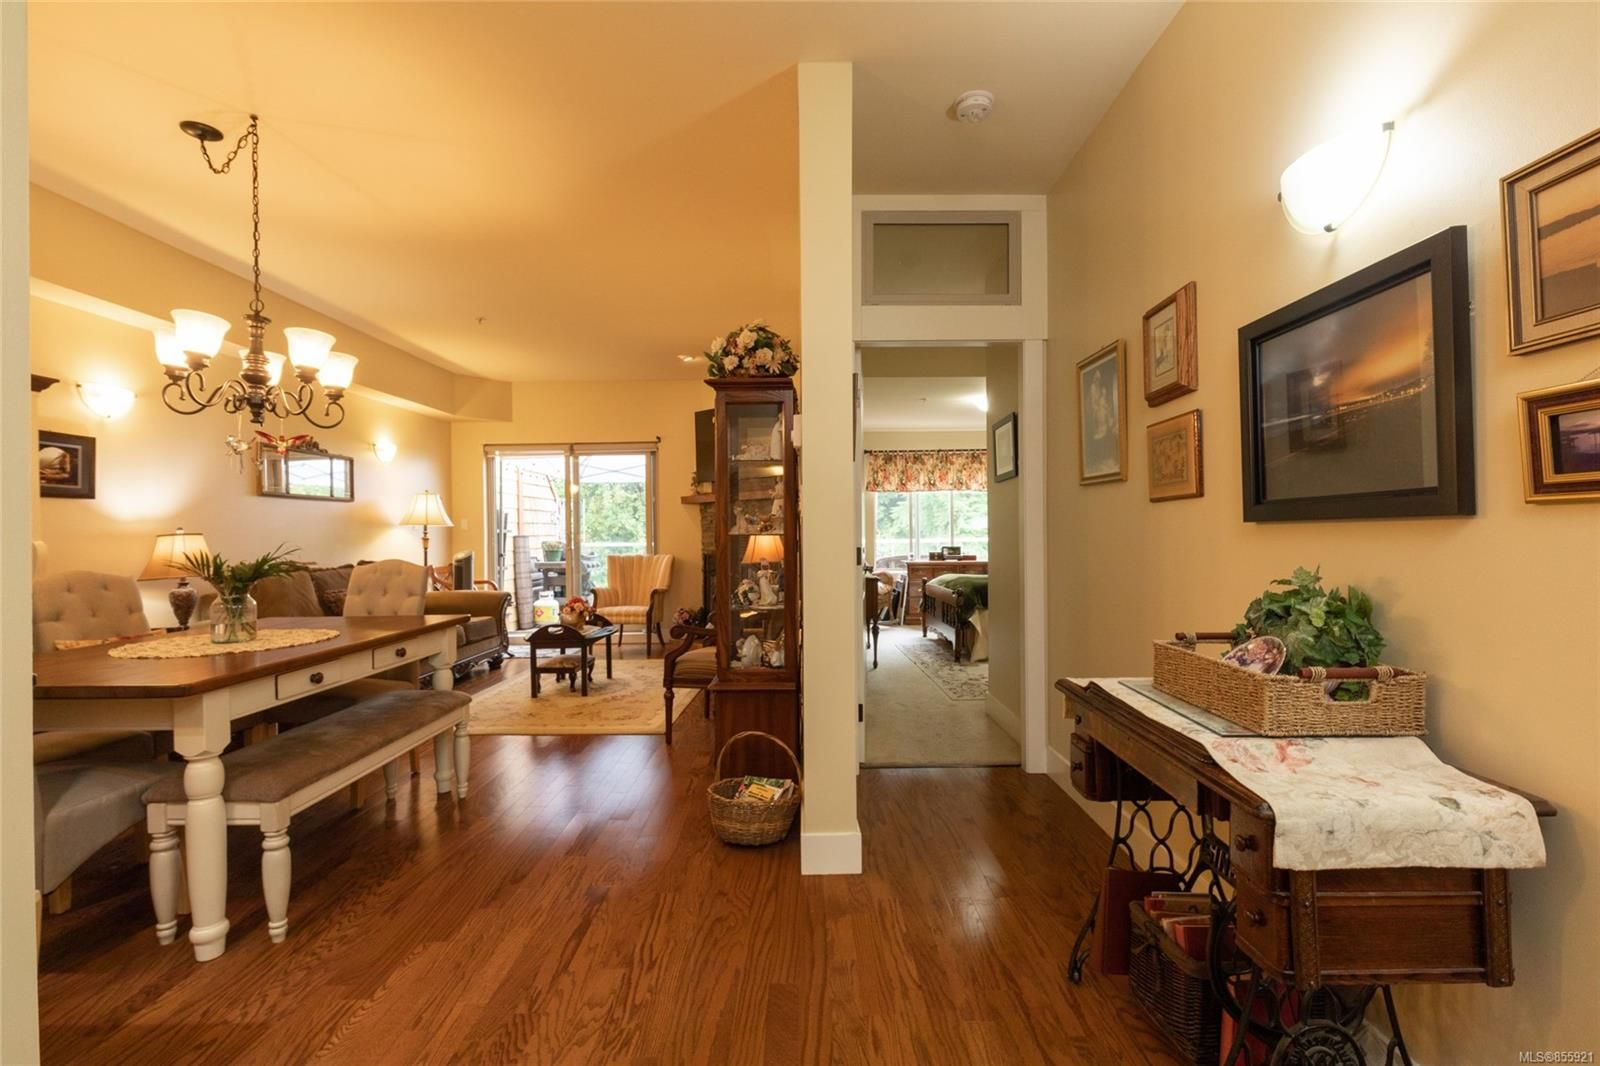 Photo 6: Photos: 206 1244 4TH Ave in : Du Ladysmith Row/Townhouse for sale (Duncan)  : MLS®# 855921